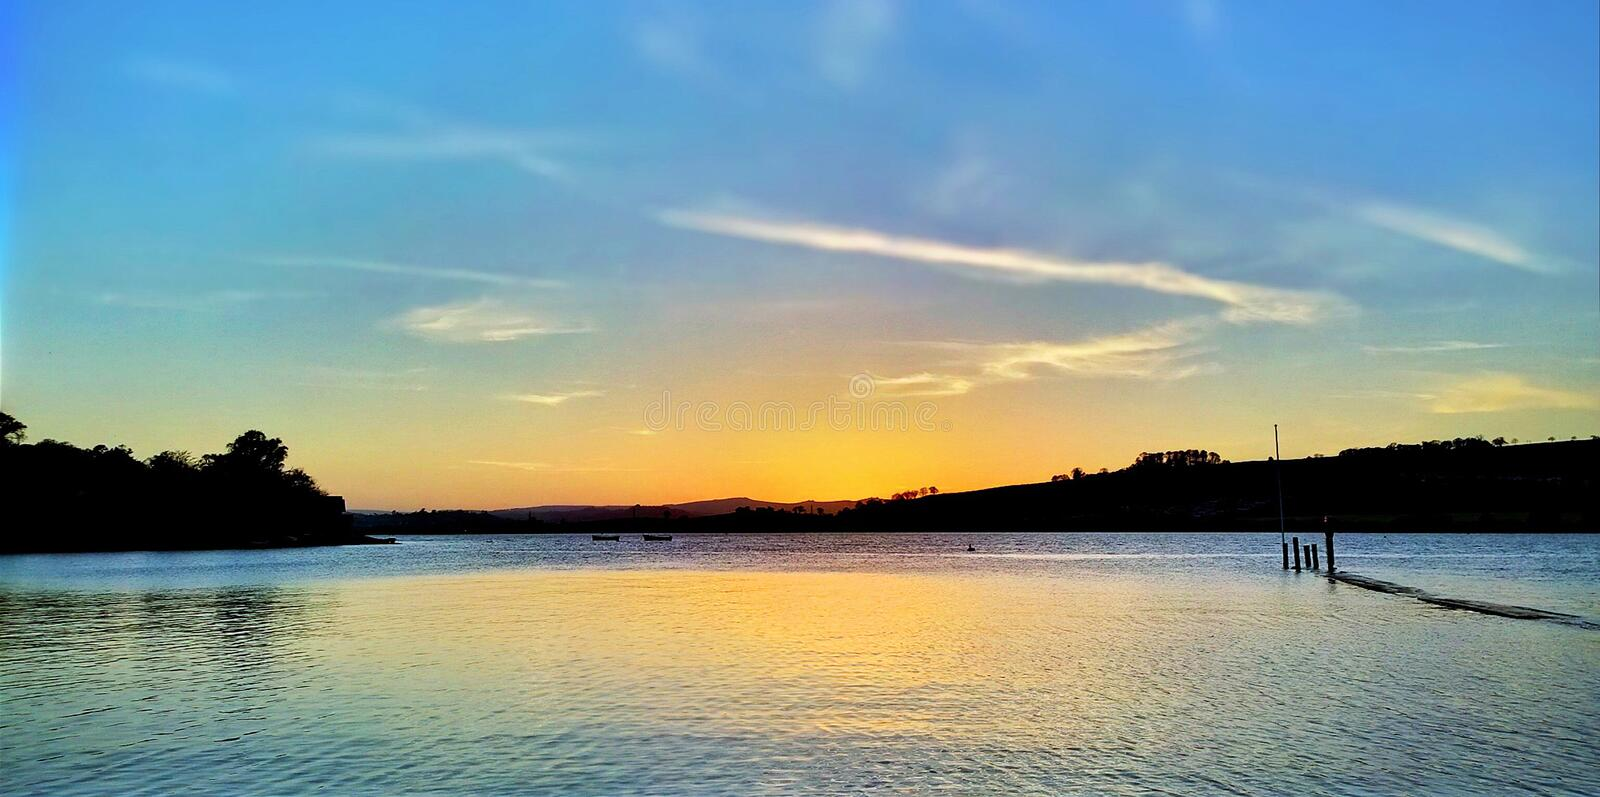 Estuary view. 2014 lovely view of the teing estuary at sunset showing a bright sunset in the background, teign estuary, love devon life royalty free stock photo